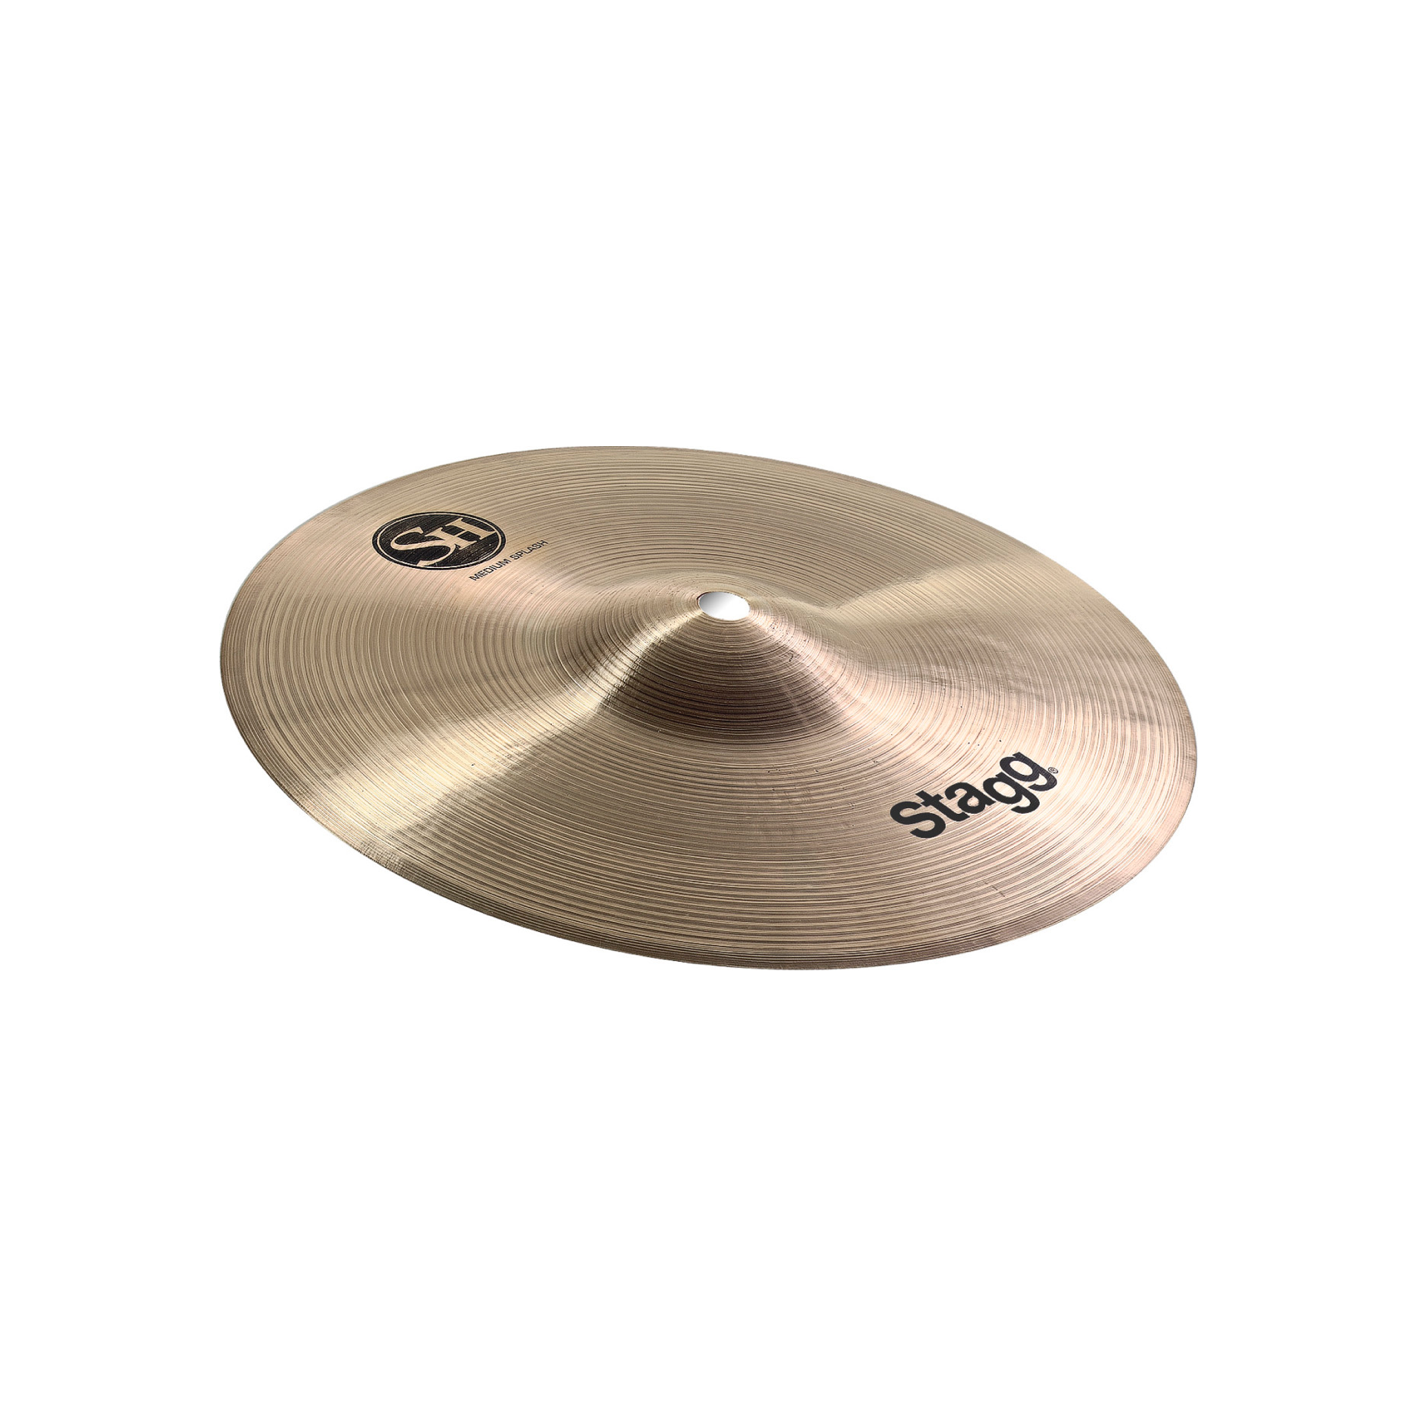 Stagg SH medium splash cymbal (various sizes)